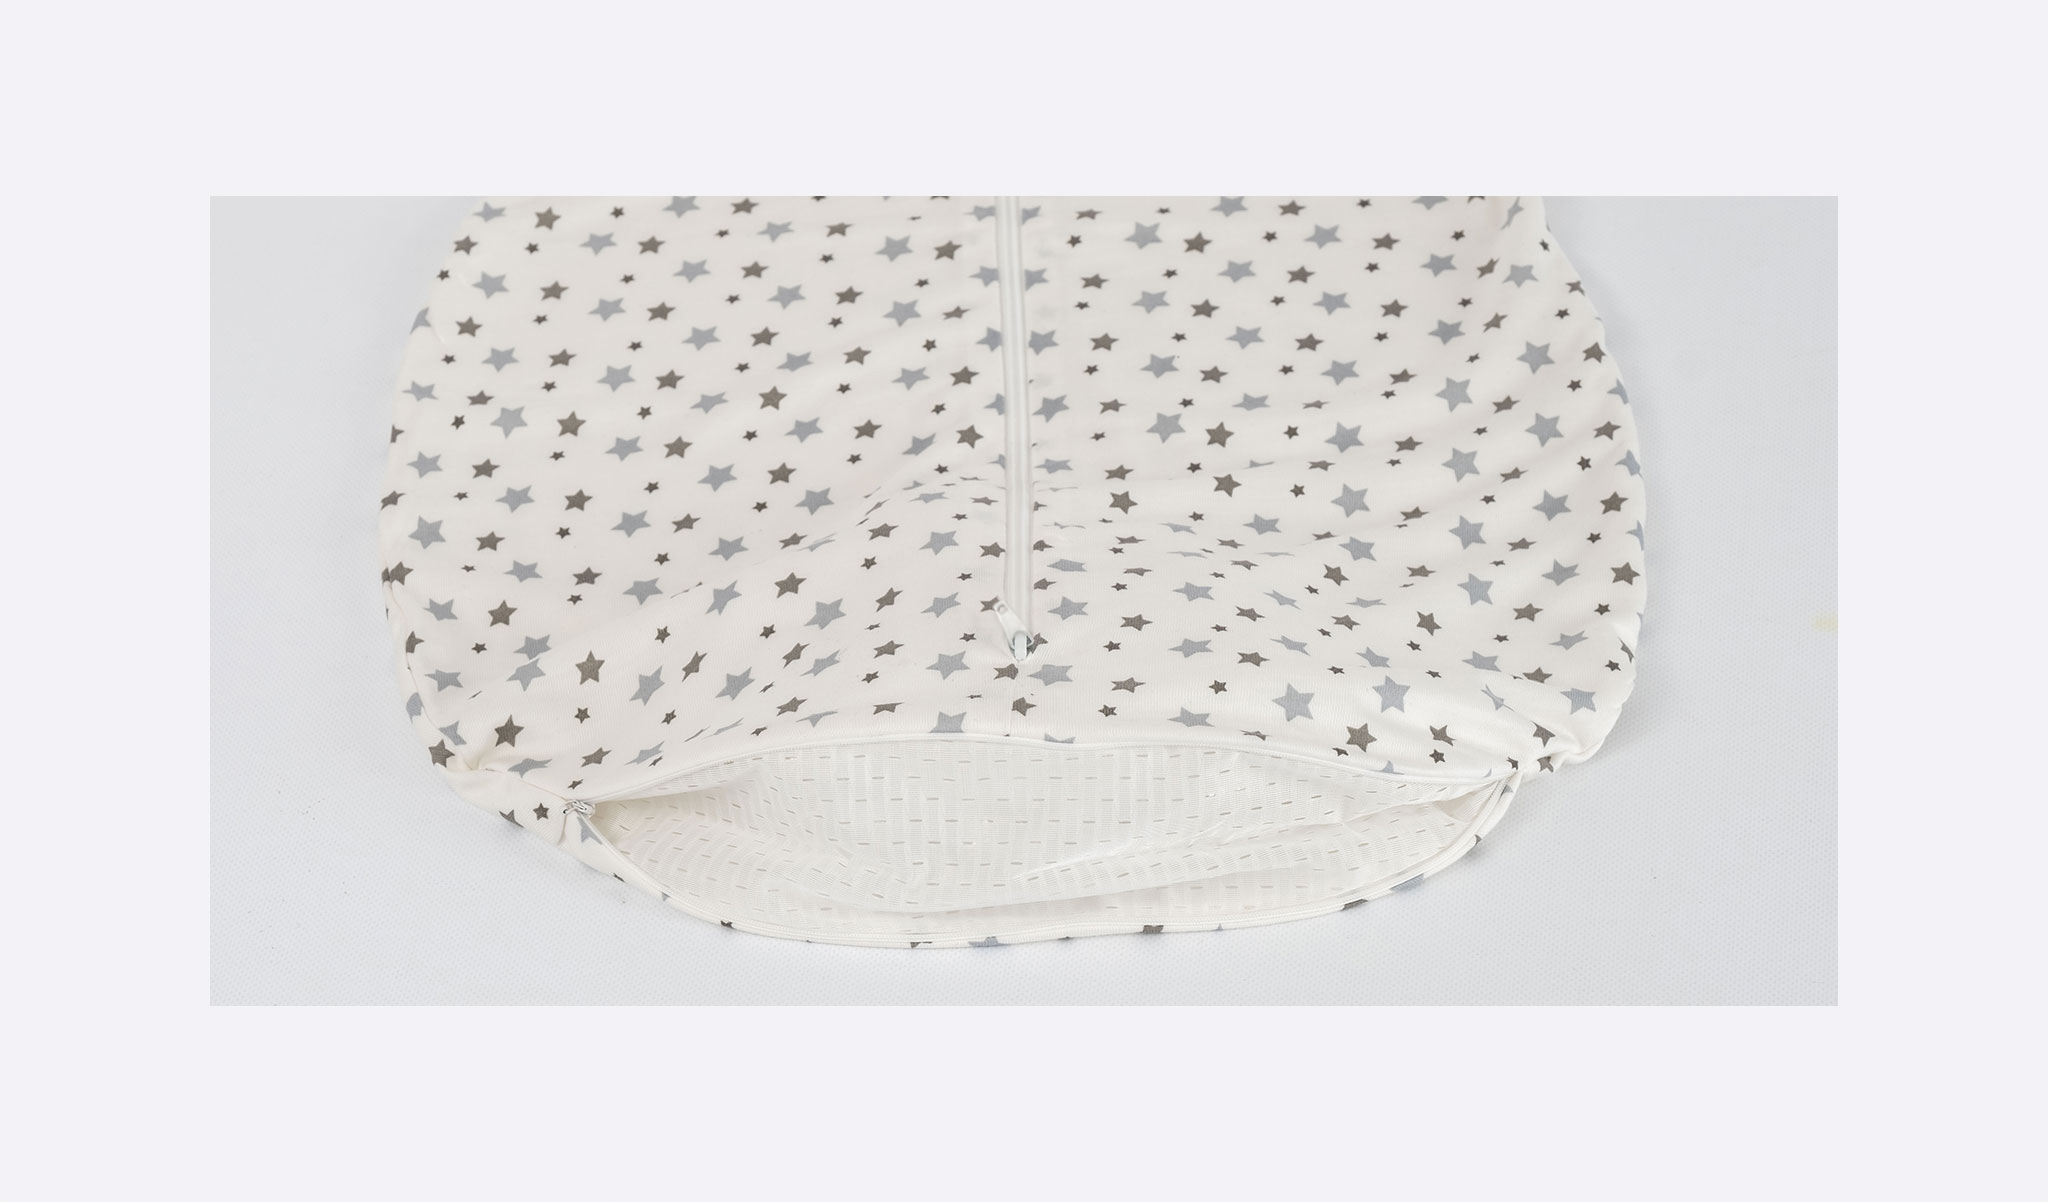 S0300303 - summer sleeping bag white with grey stars